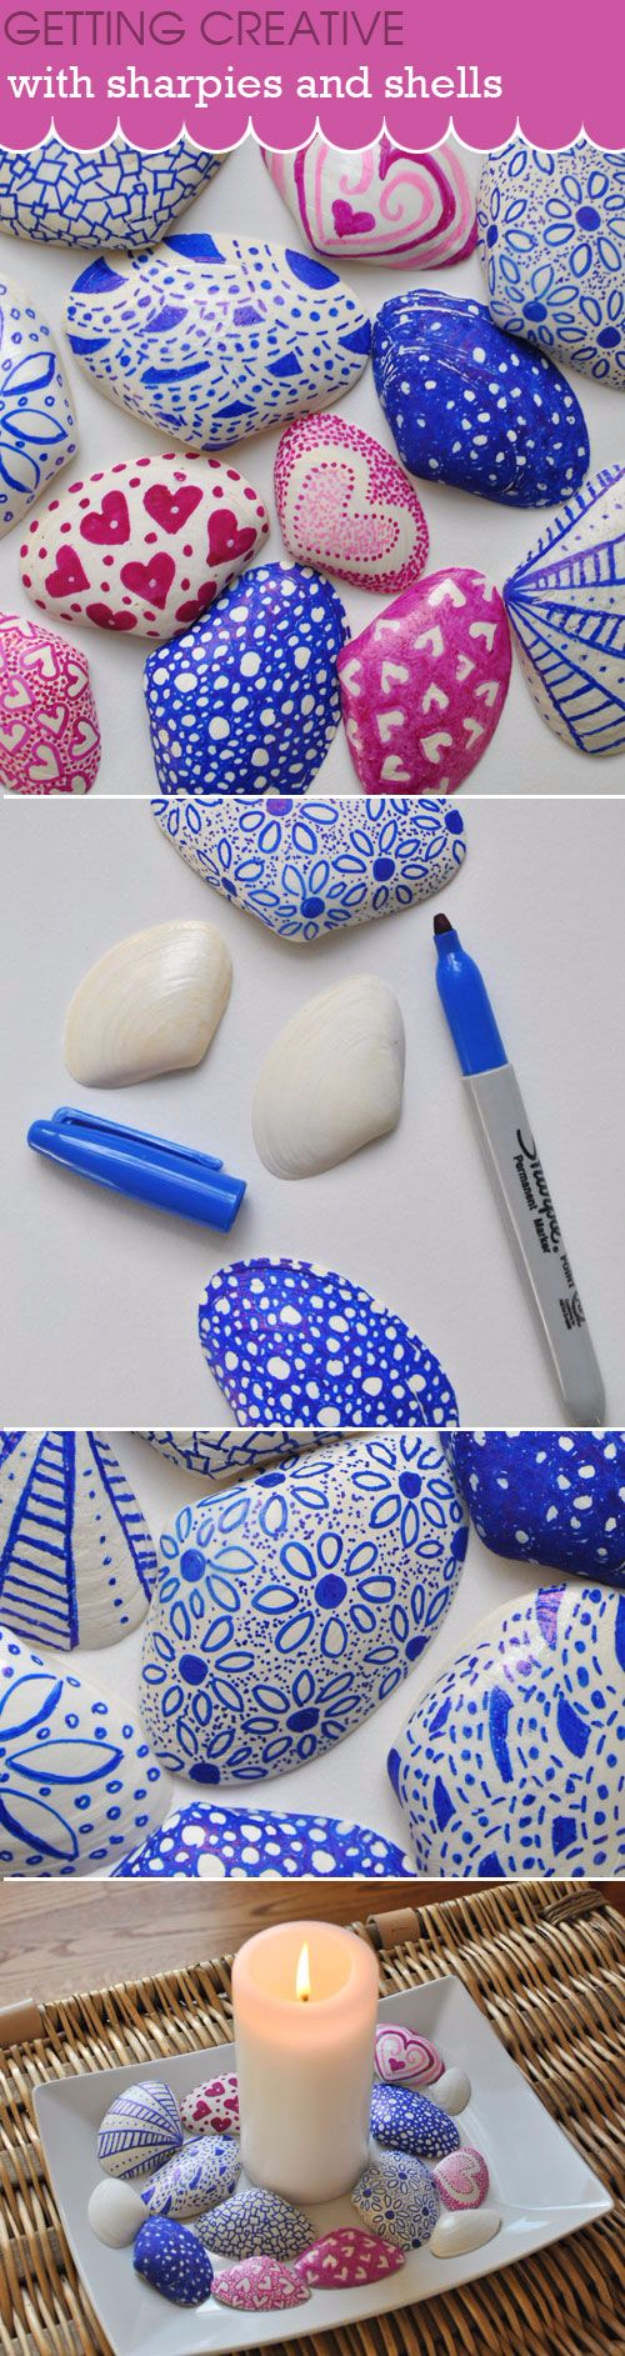 50 Sharpie Crafts That Are Cool Easy Fun To Make